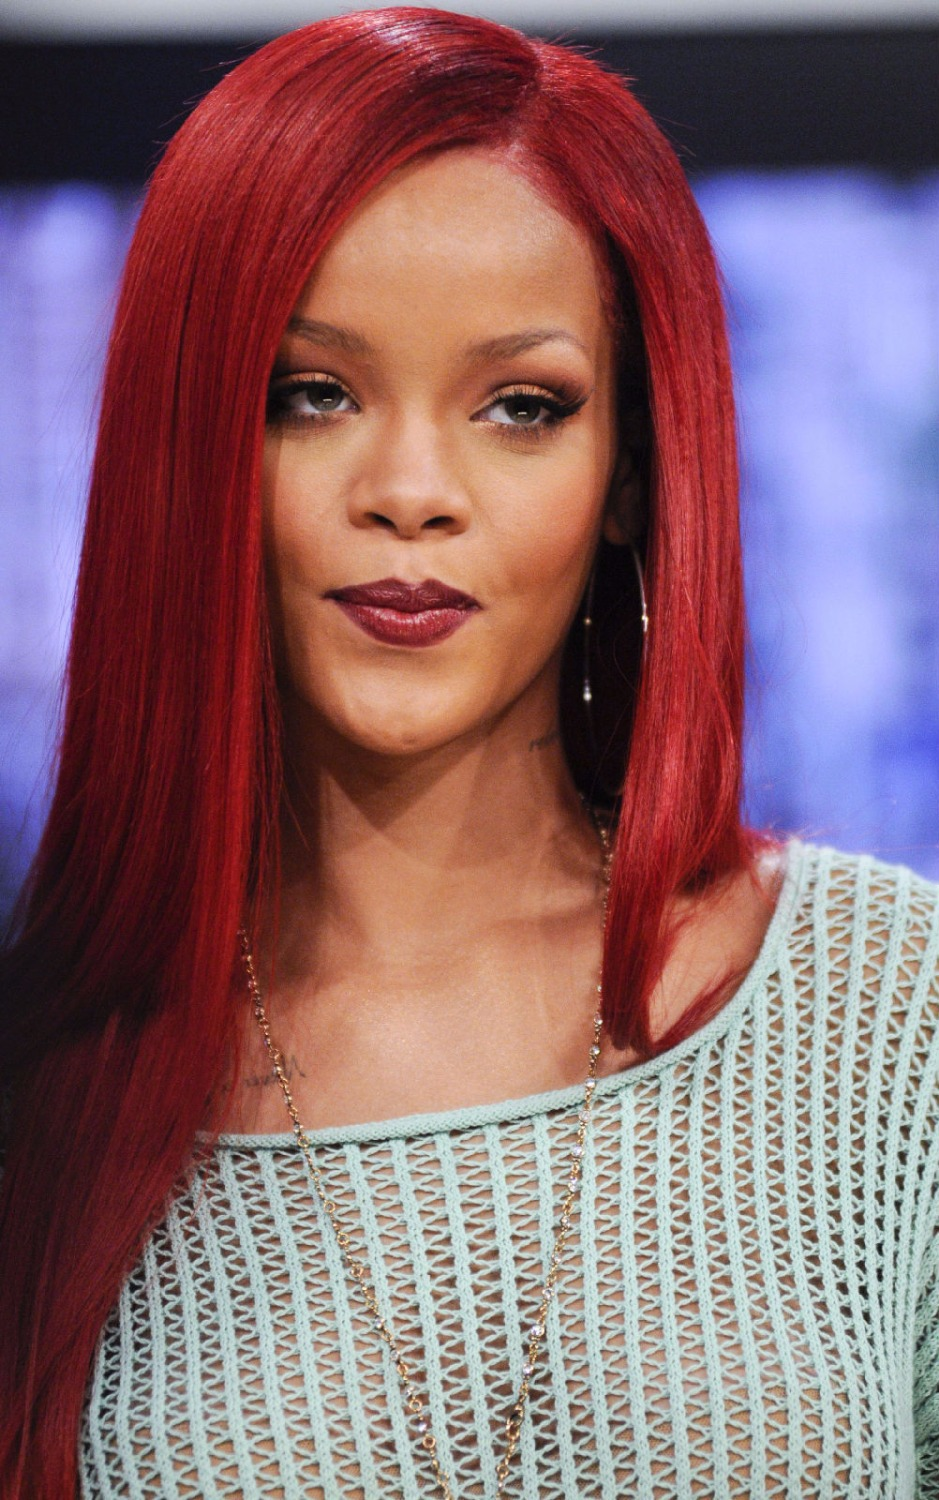 2015 Newest Submissive Long Nature Red Color Straight Rihanna Hairstyle Lace Front Synthetic Wig About 24 Inches<br><br>Aliexpress